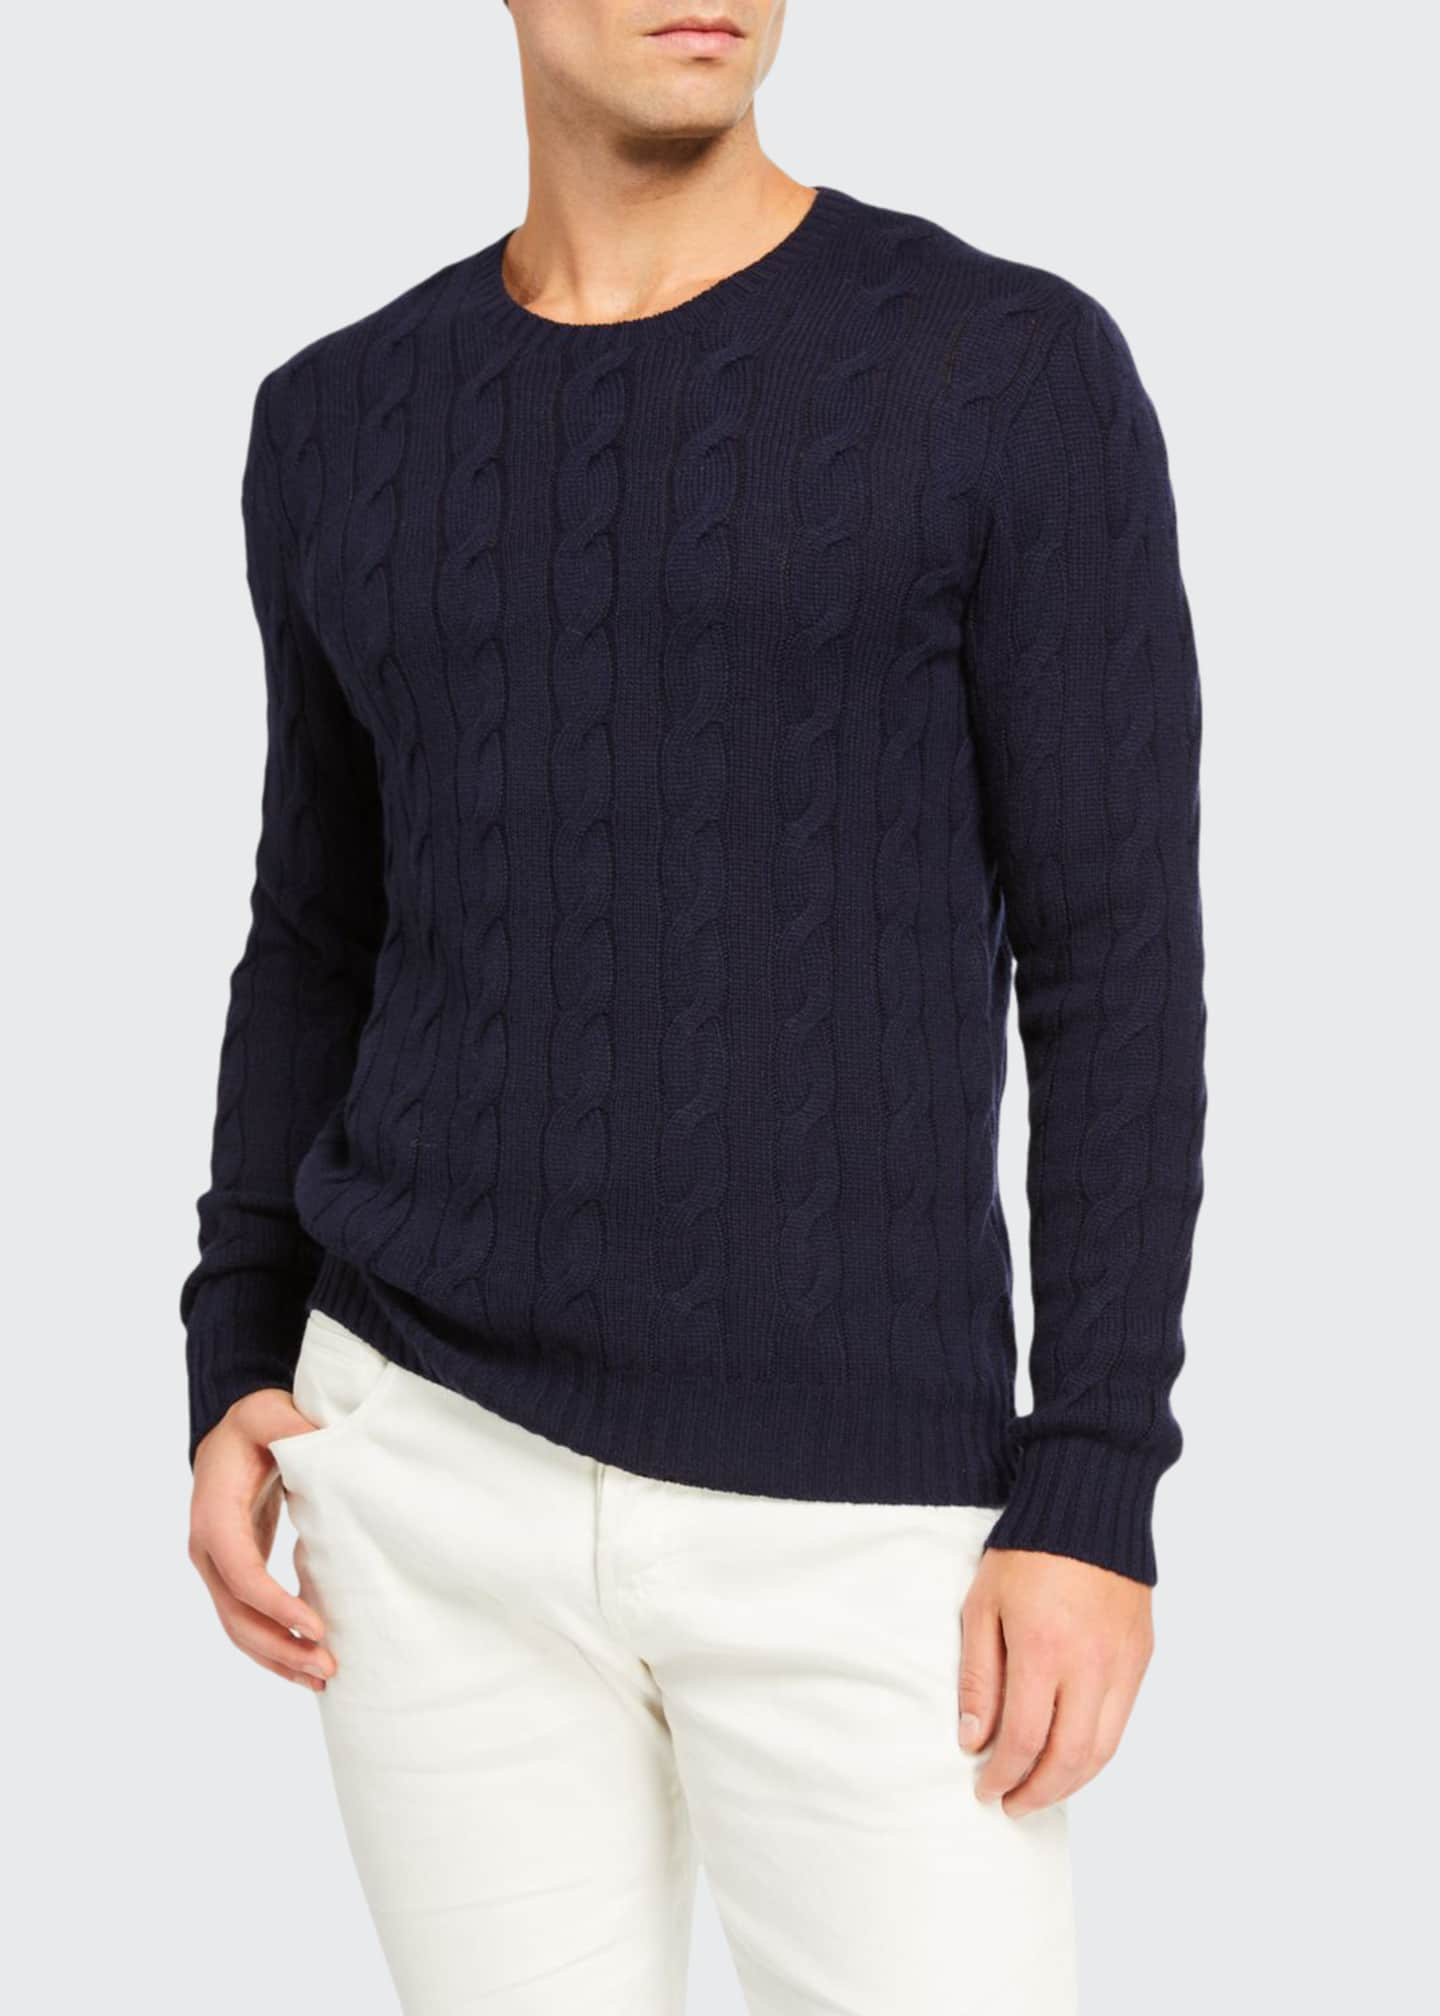 Cashmere Cable-Knit Crewneck Sweater, Navy